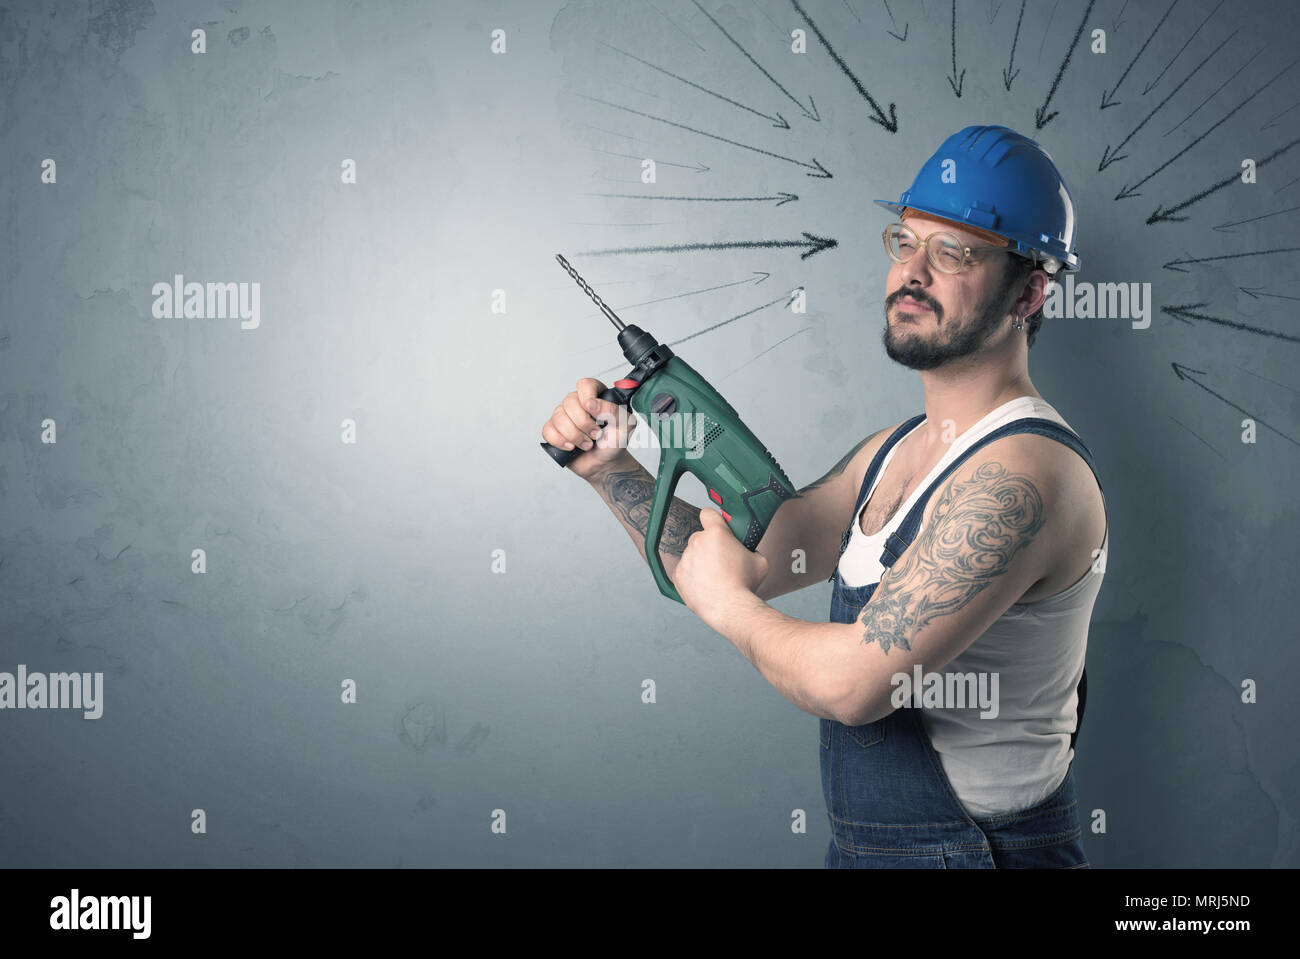 Factotum Stock Photos & Factotum Stock Images - Page 4 - Alamy